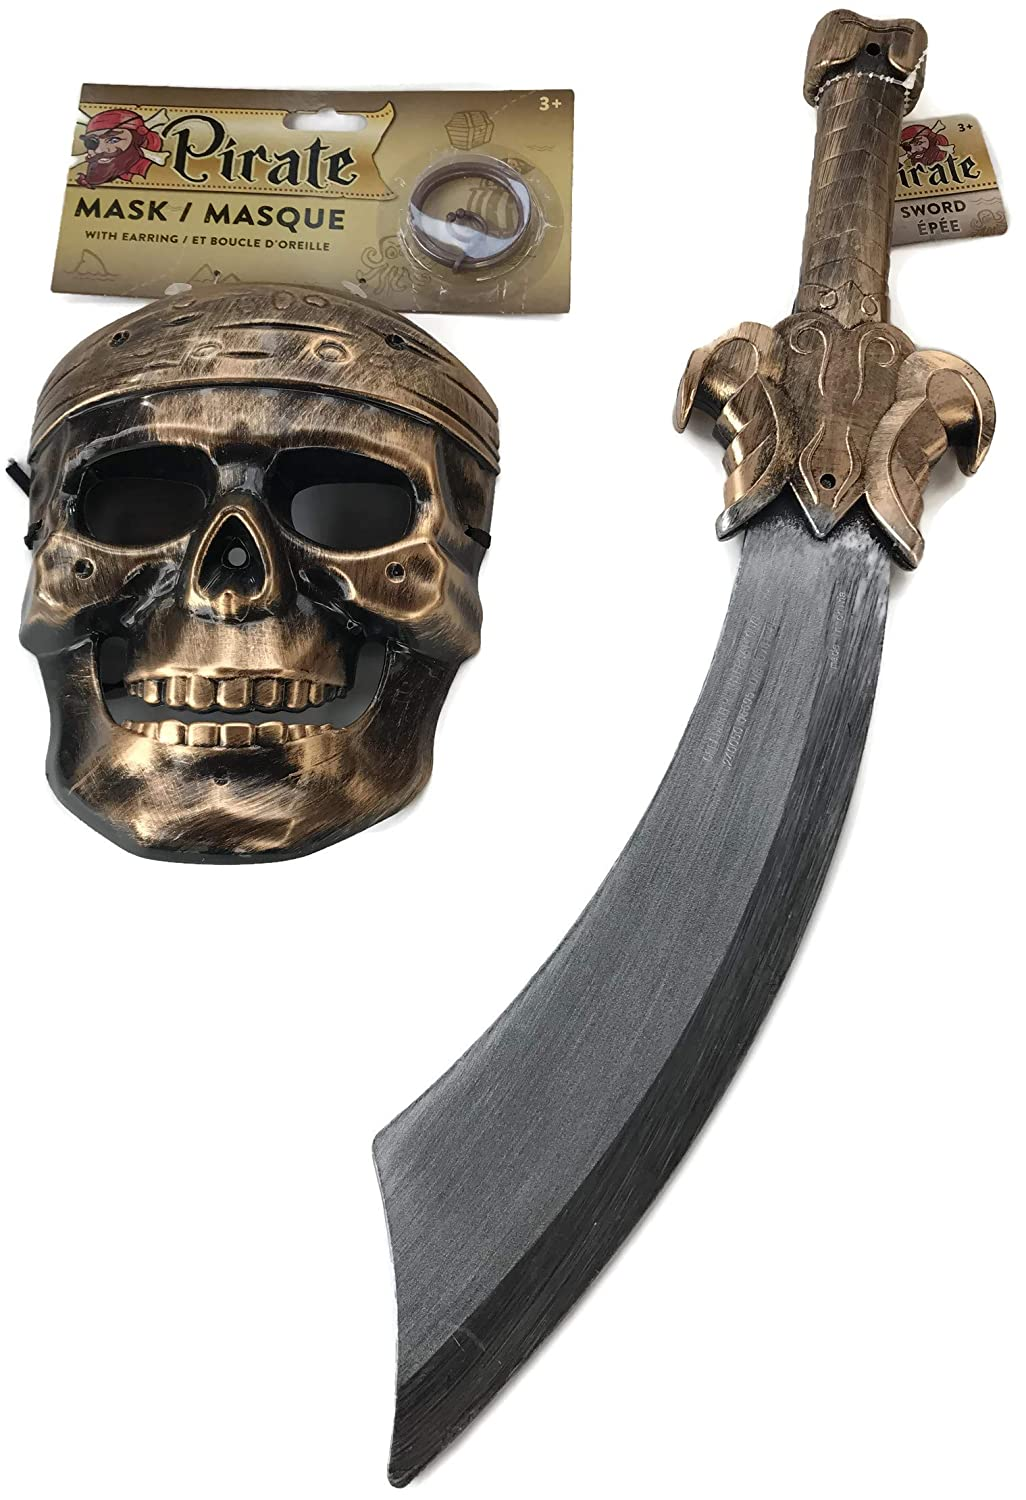 PROSPERITY DEVINE Plastic Pirate Halloween MASK Earing Pirate Sword